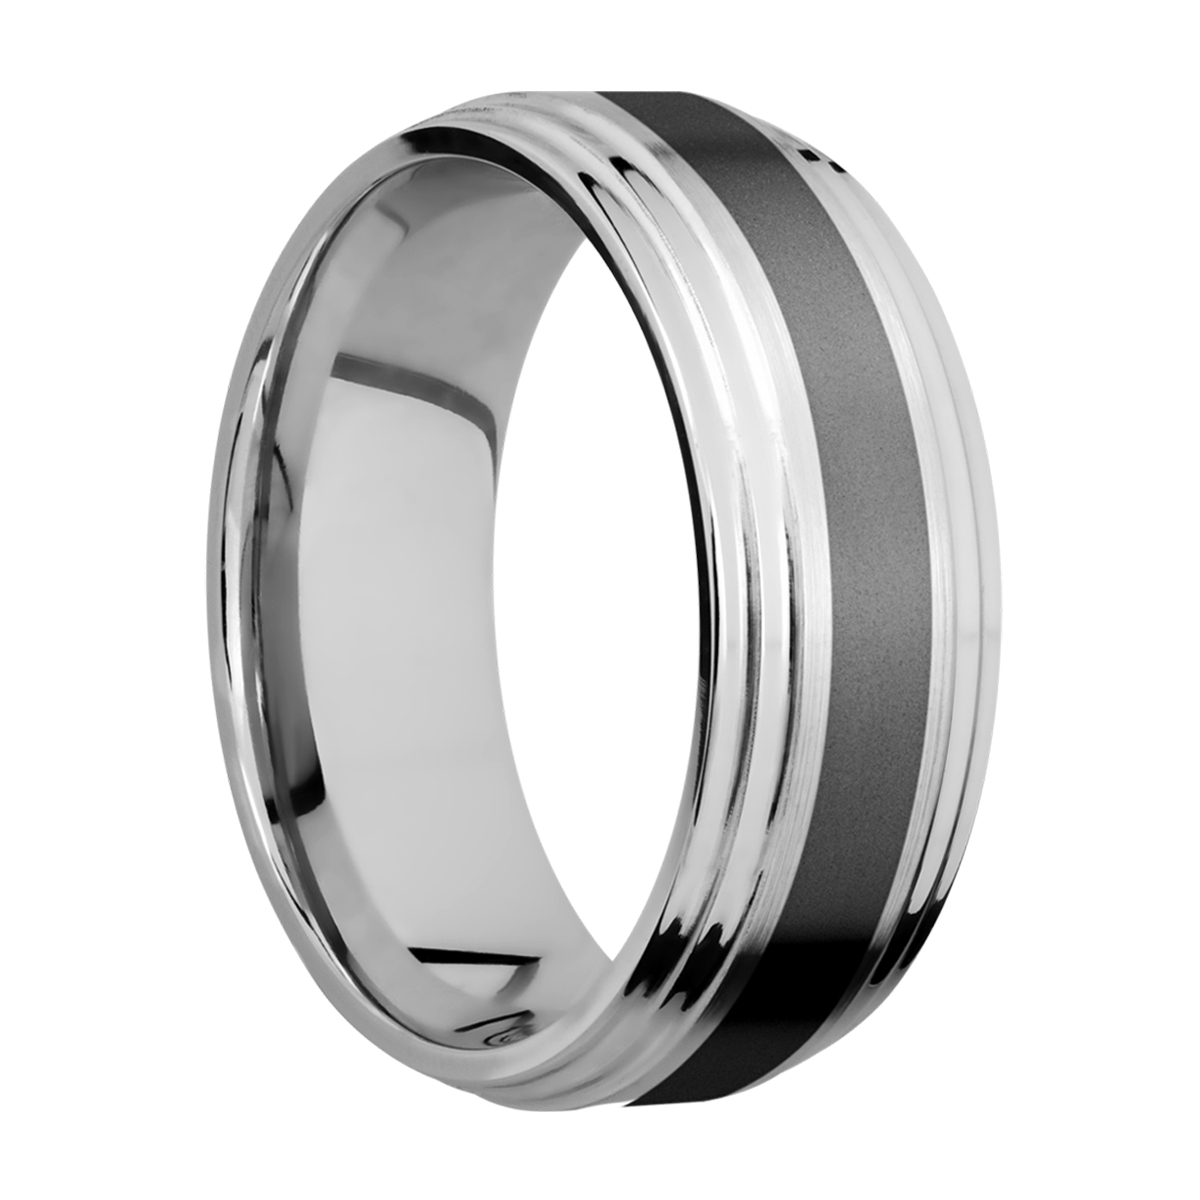 Lashbrook CCPF3F2S13/ZIRCONIUM Cobalt Chrome Wedding Ring or Band Alternative View 1